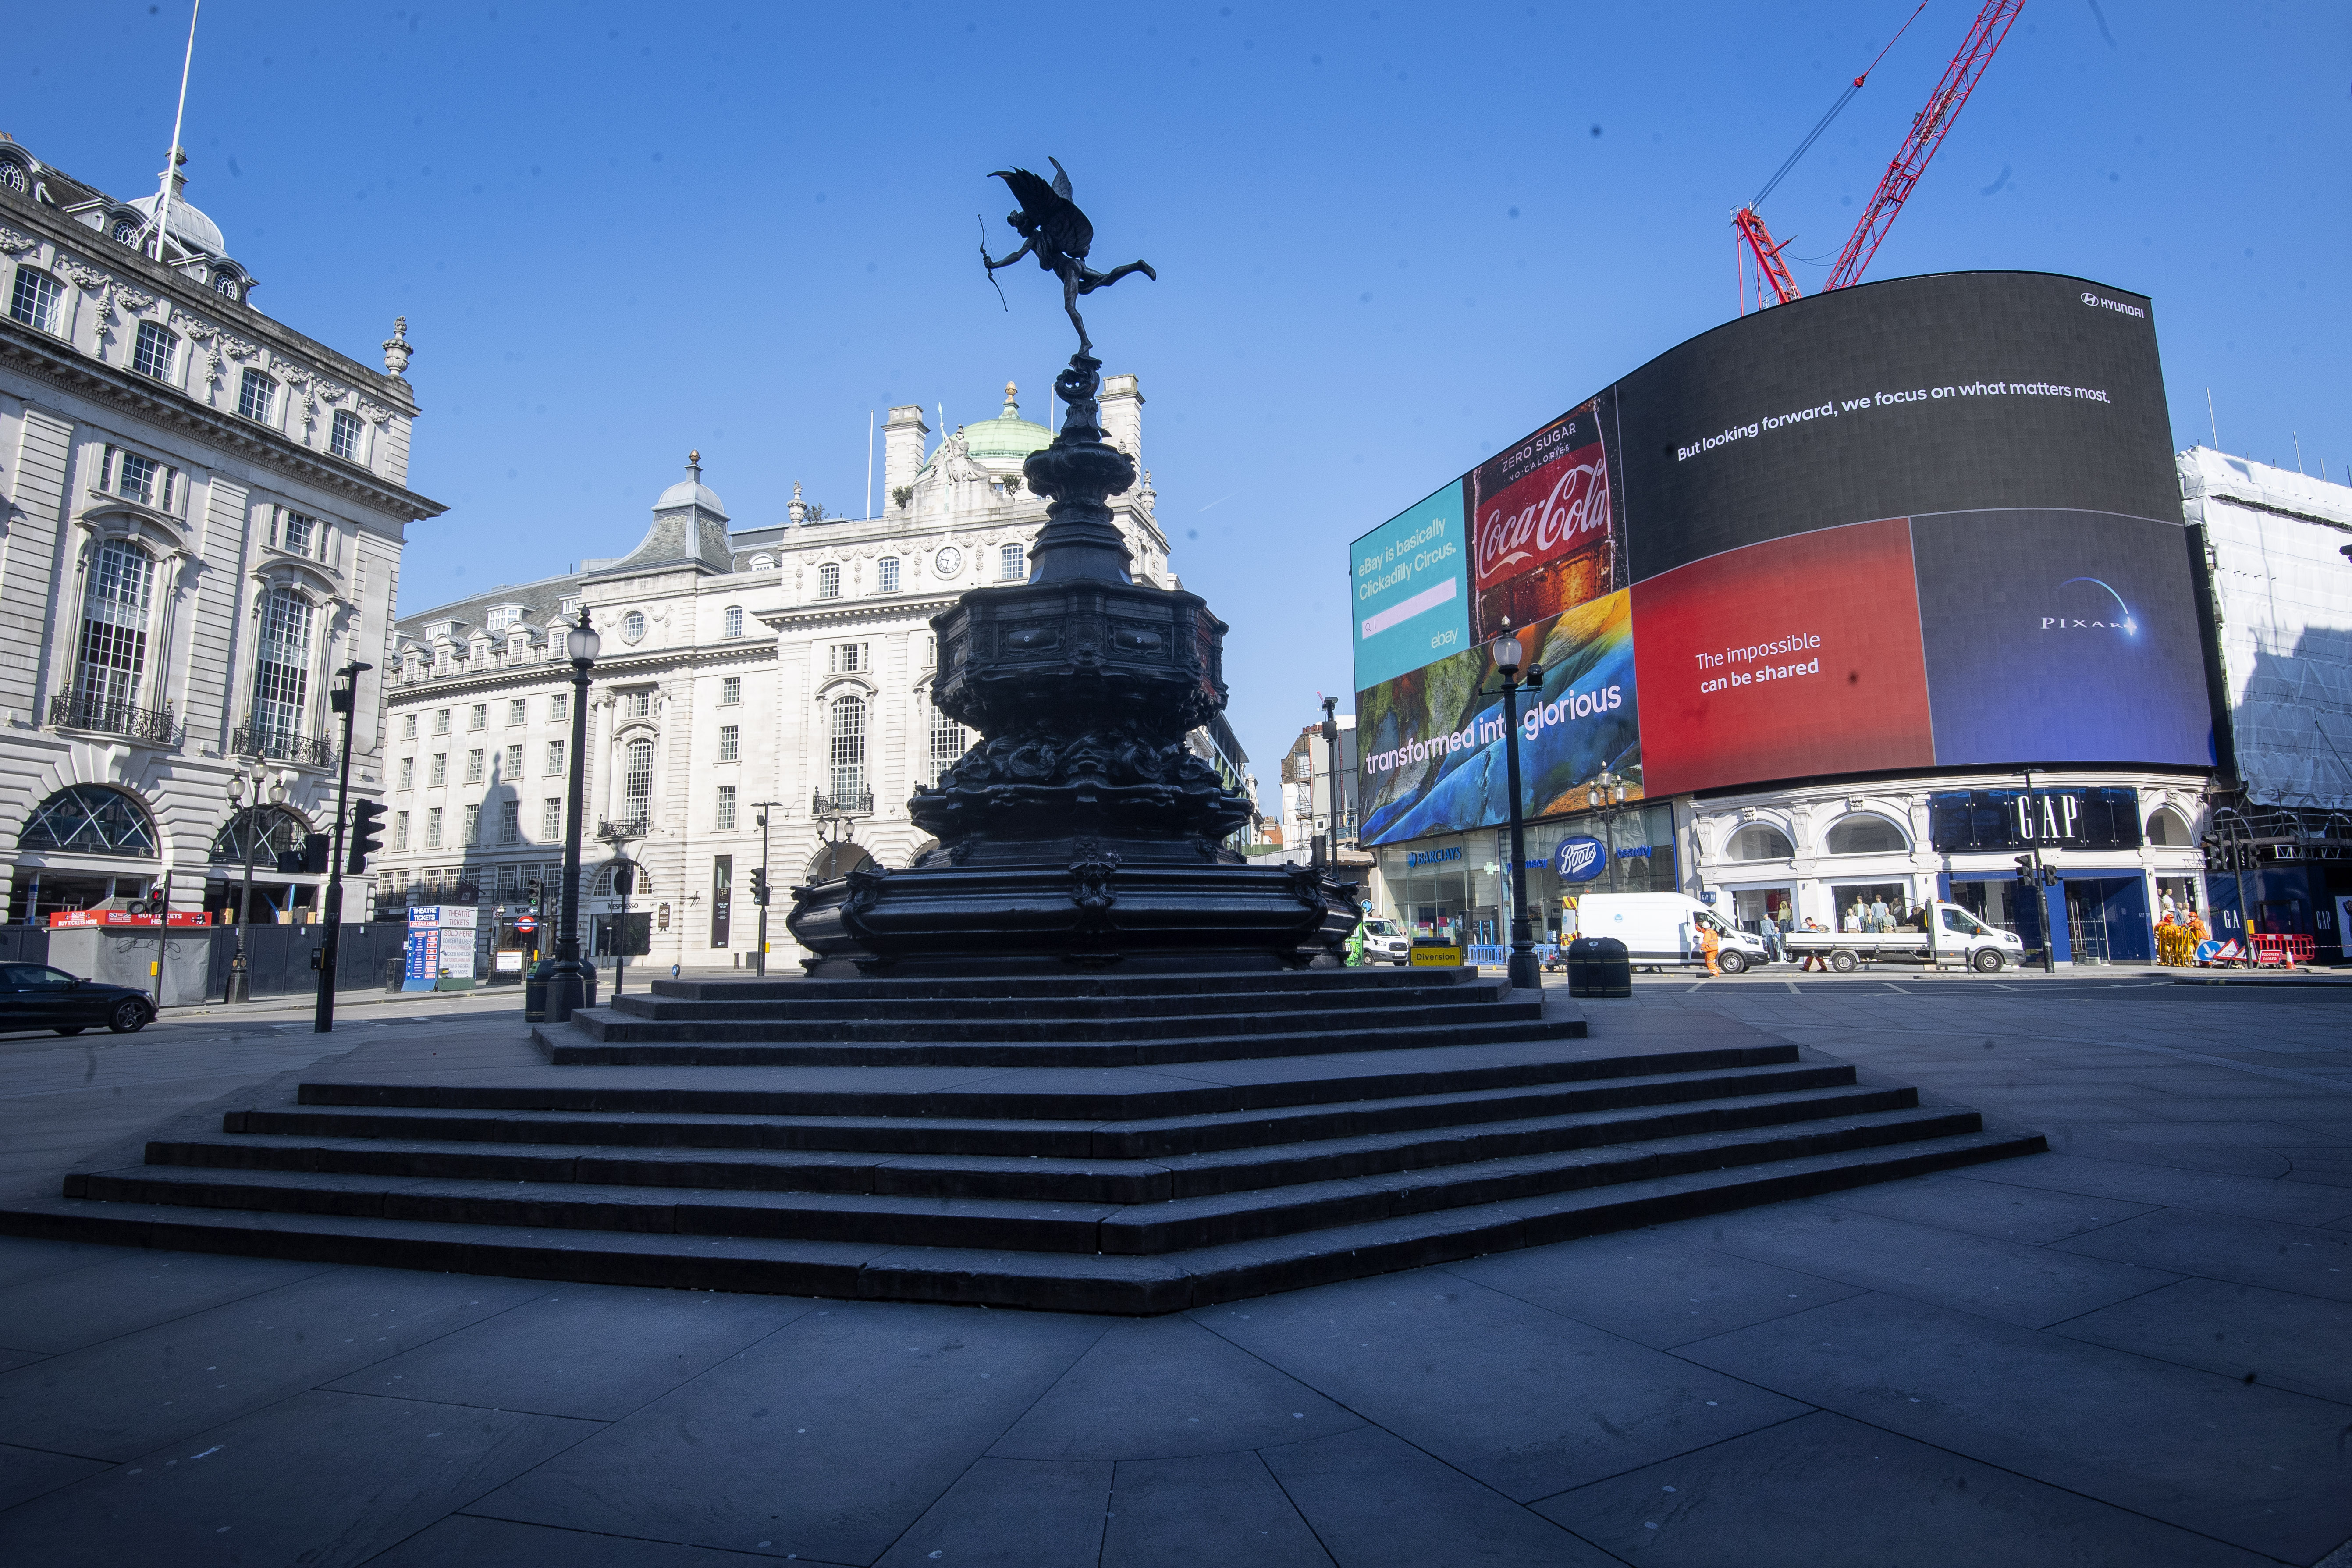 A deserted Piccadilly Circus during morning rush hour after Prime Minister Boris Johnson put the UK in lockdown to help curb the spread of the coronavirus.